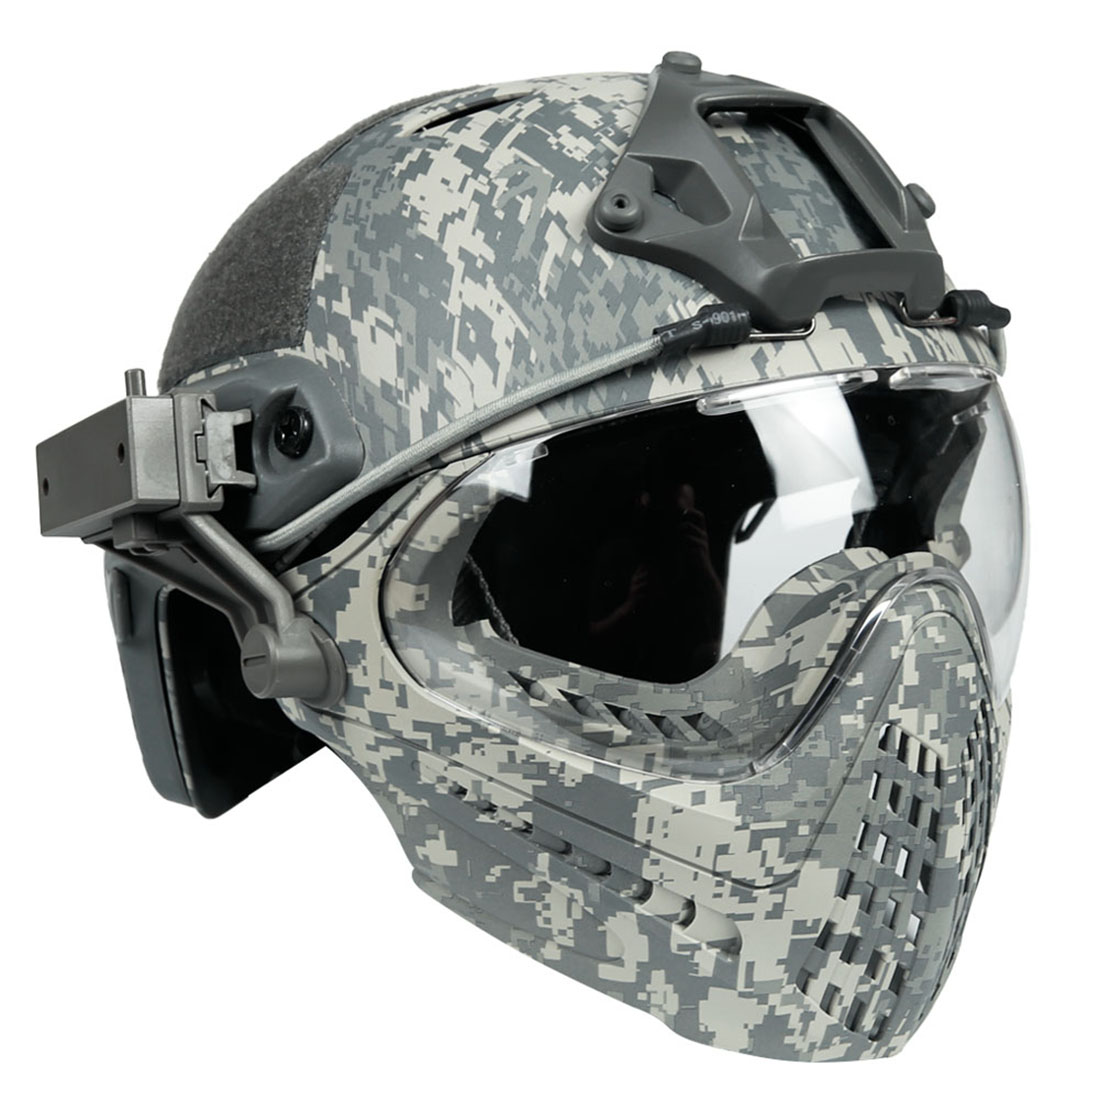 NFSTRIKE Military Mask Navigator Tactics Camouflage Protecting Helmet for Nerf Military Tactical Accessories Outdoors Activities nfstrike steel wire protective fast helmet suit for airsoft military tactics helmet for nerf accessories games outdoor activity